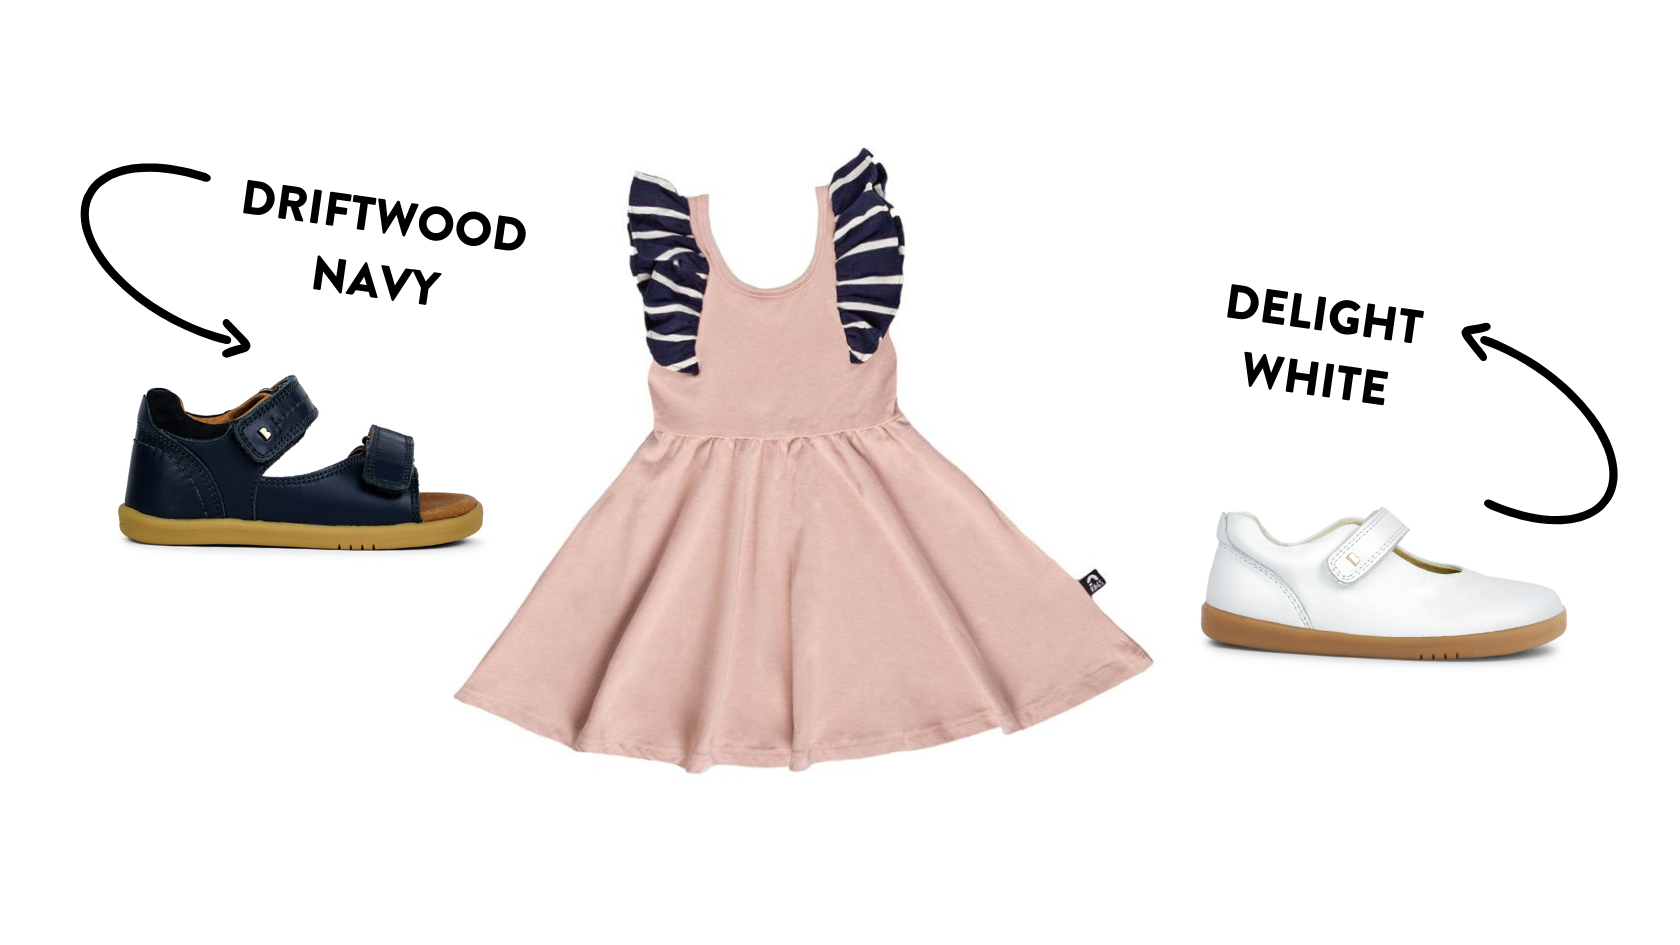 rags kids swing dress pink navy striped bobux driftwood navy sandal white delight shoe outfit